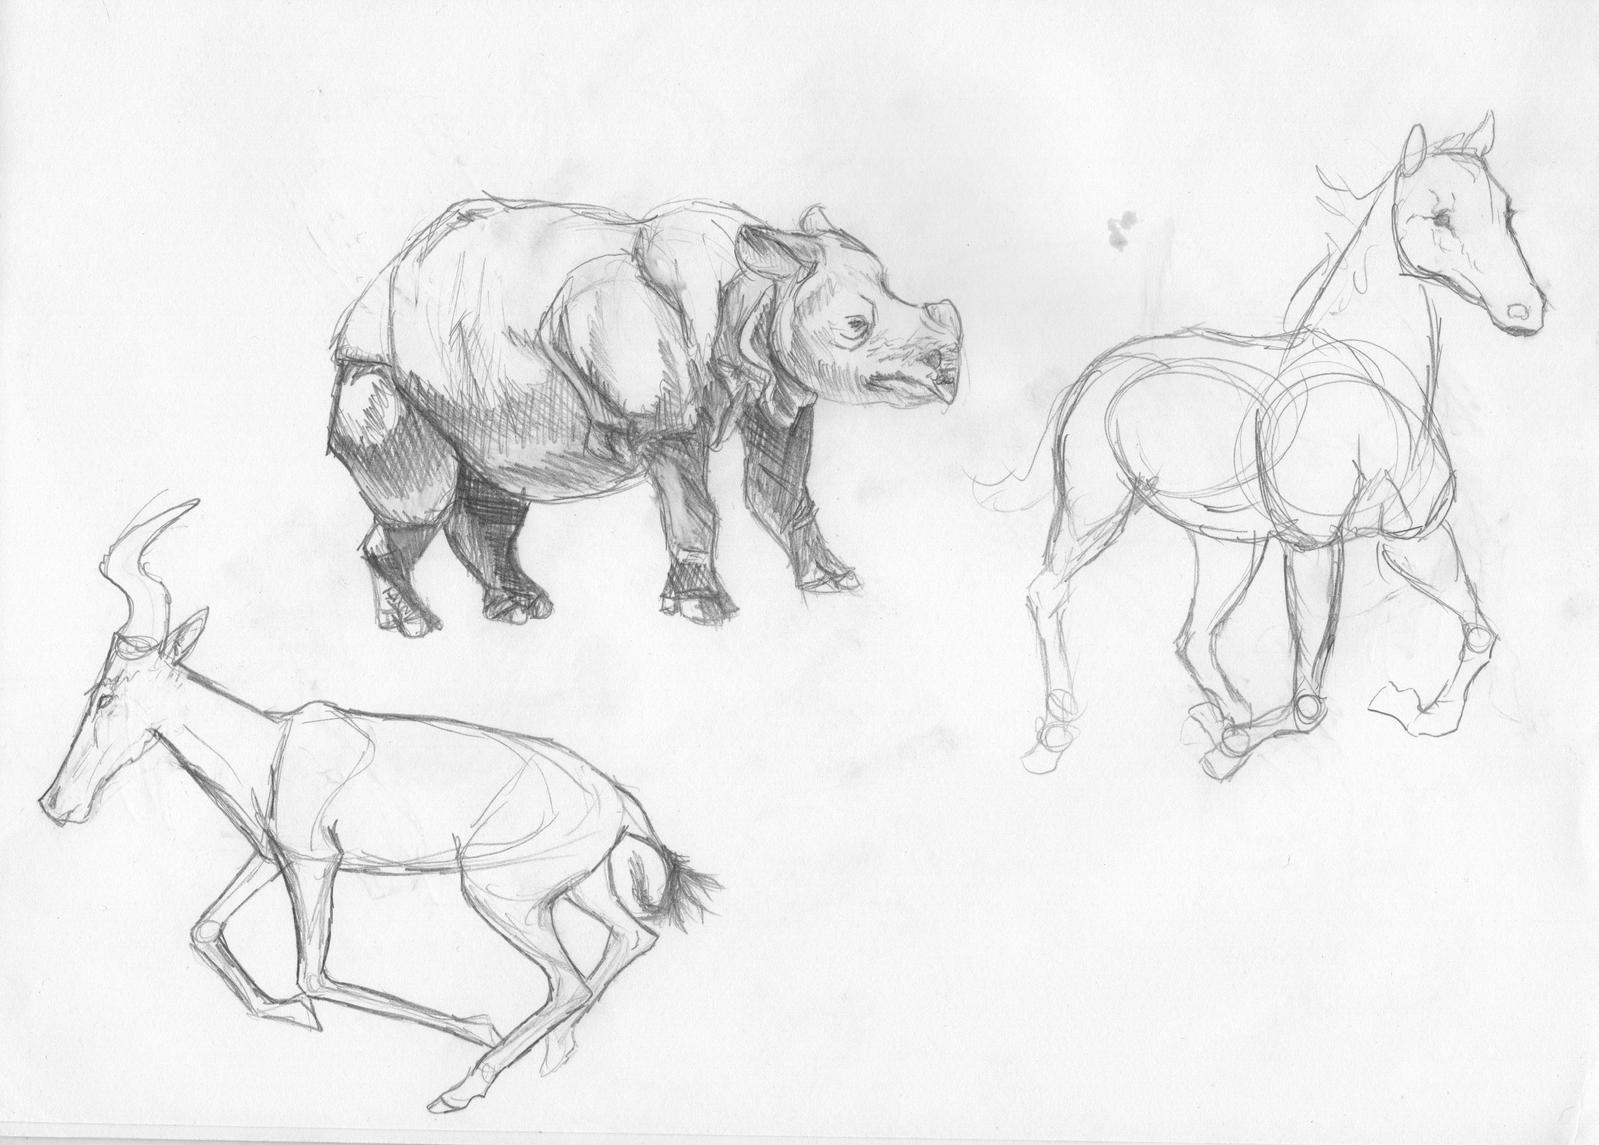 Animal doodles by Quadrupedal